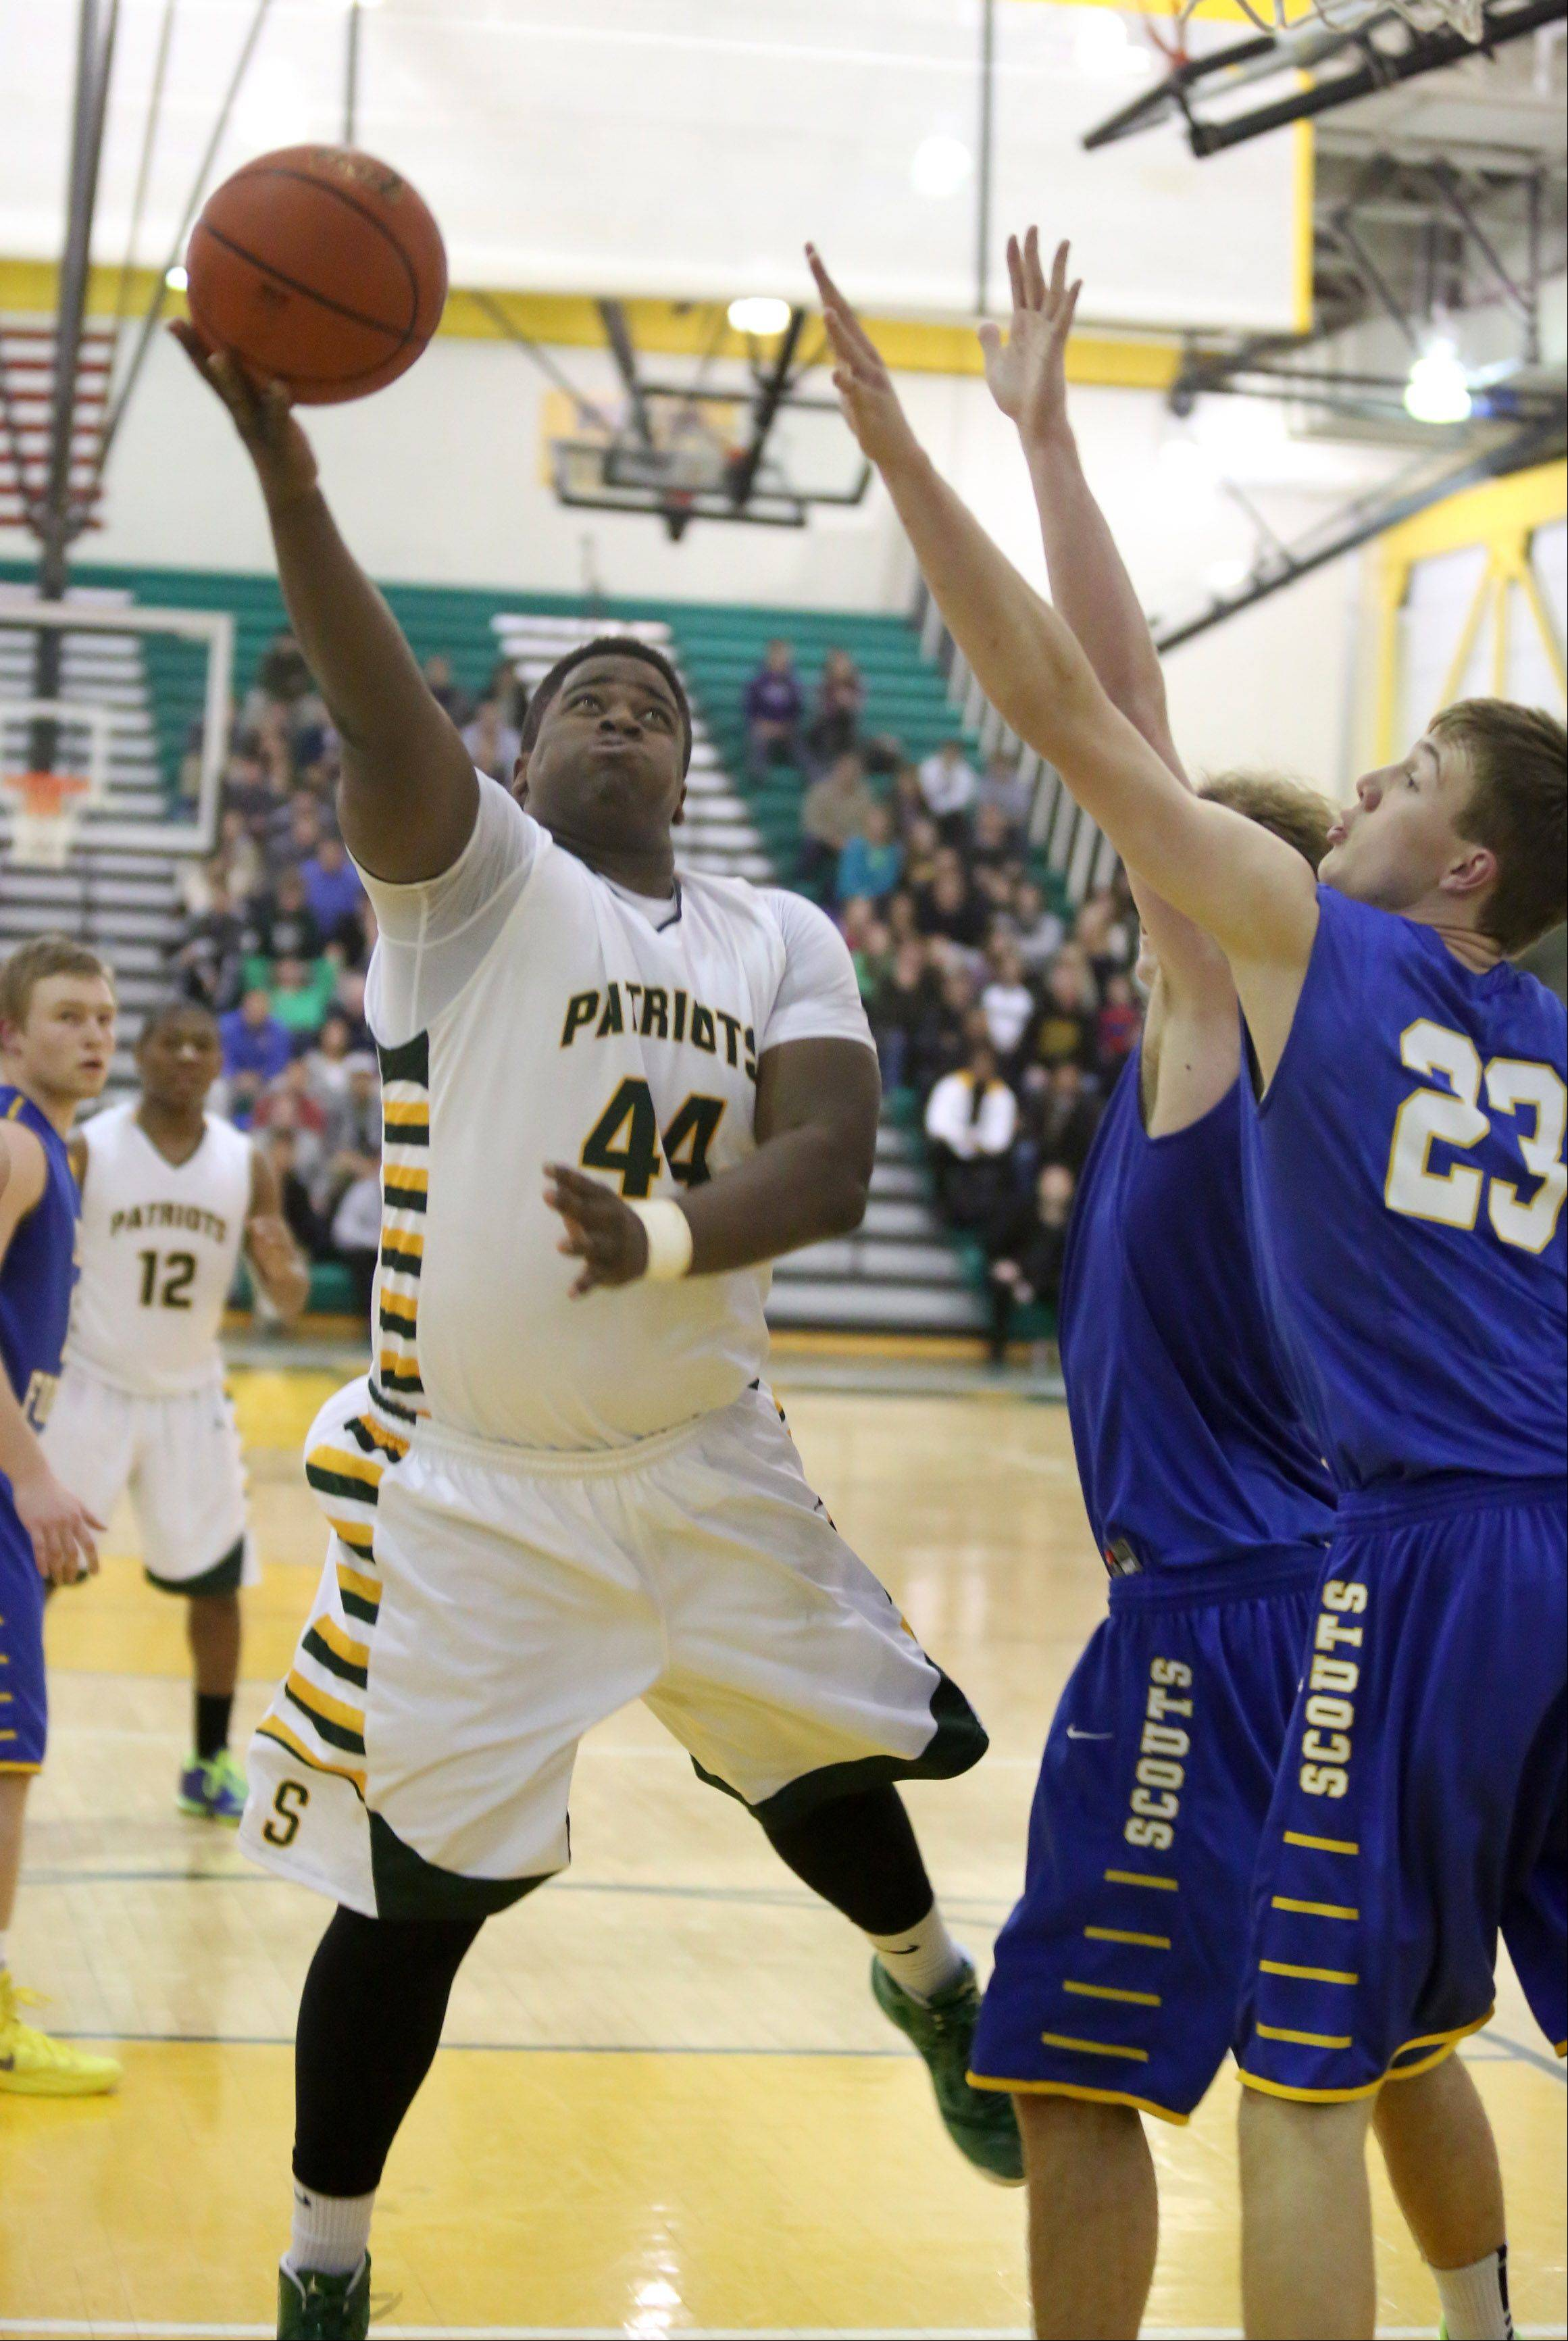 Stevenson forward Nick Dillon shoots the ball against Lake Forest defender Steve Vogrich at Stevenson on Friday.